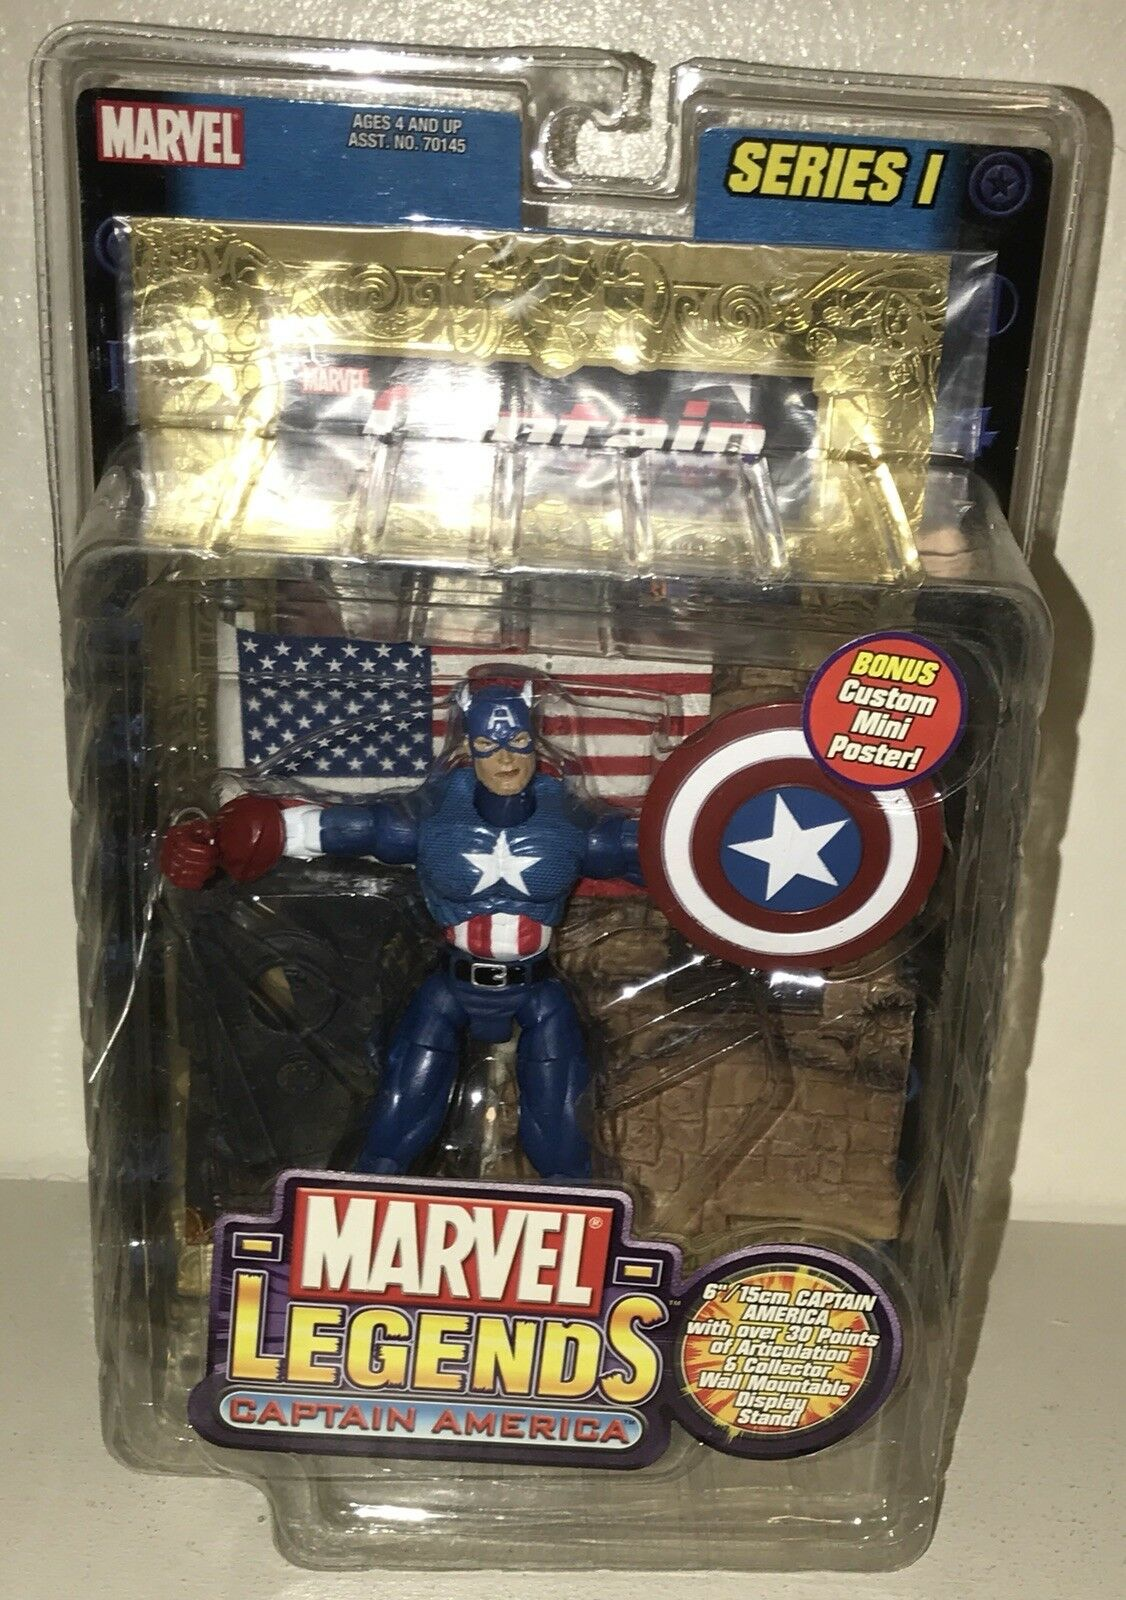 New Marvel Legends Series 1 Capt America Figure Toy Biz w Mini BONUS Foil Poster